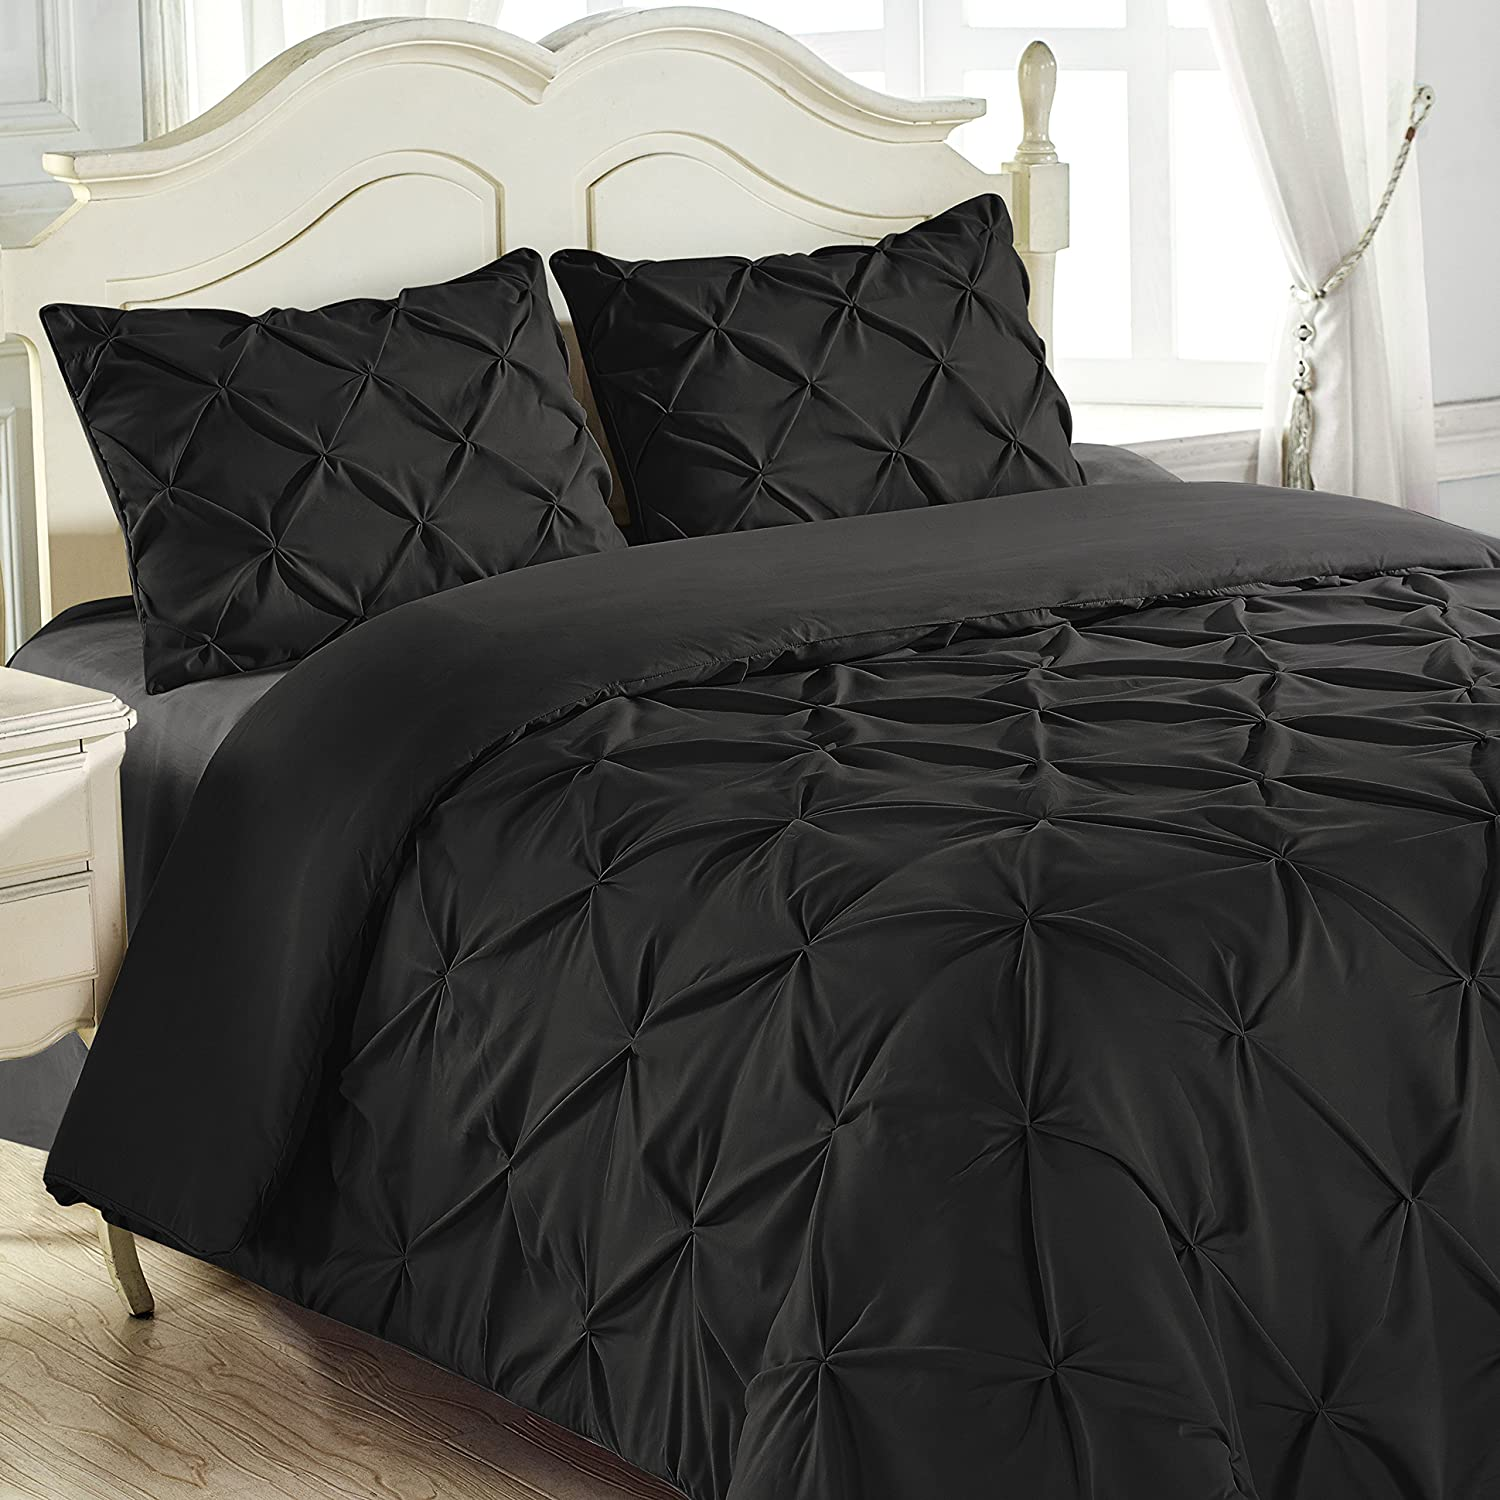 King and Queen Home Reinforced Double Stitch 3 Piece Pinch Pleat Comforter Set (King, Black